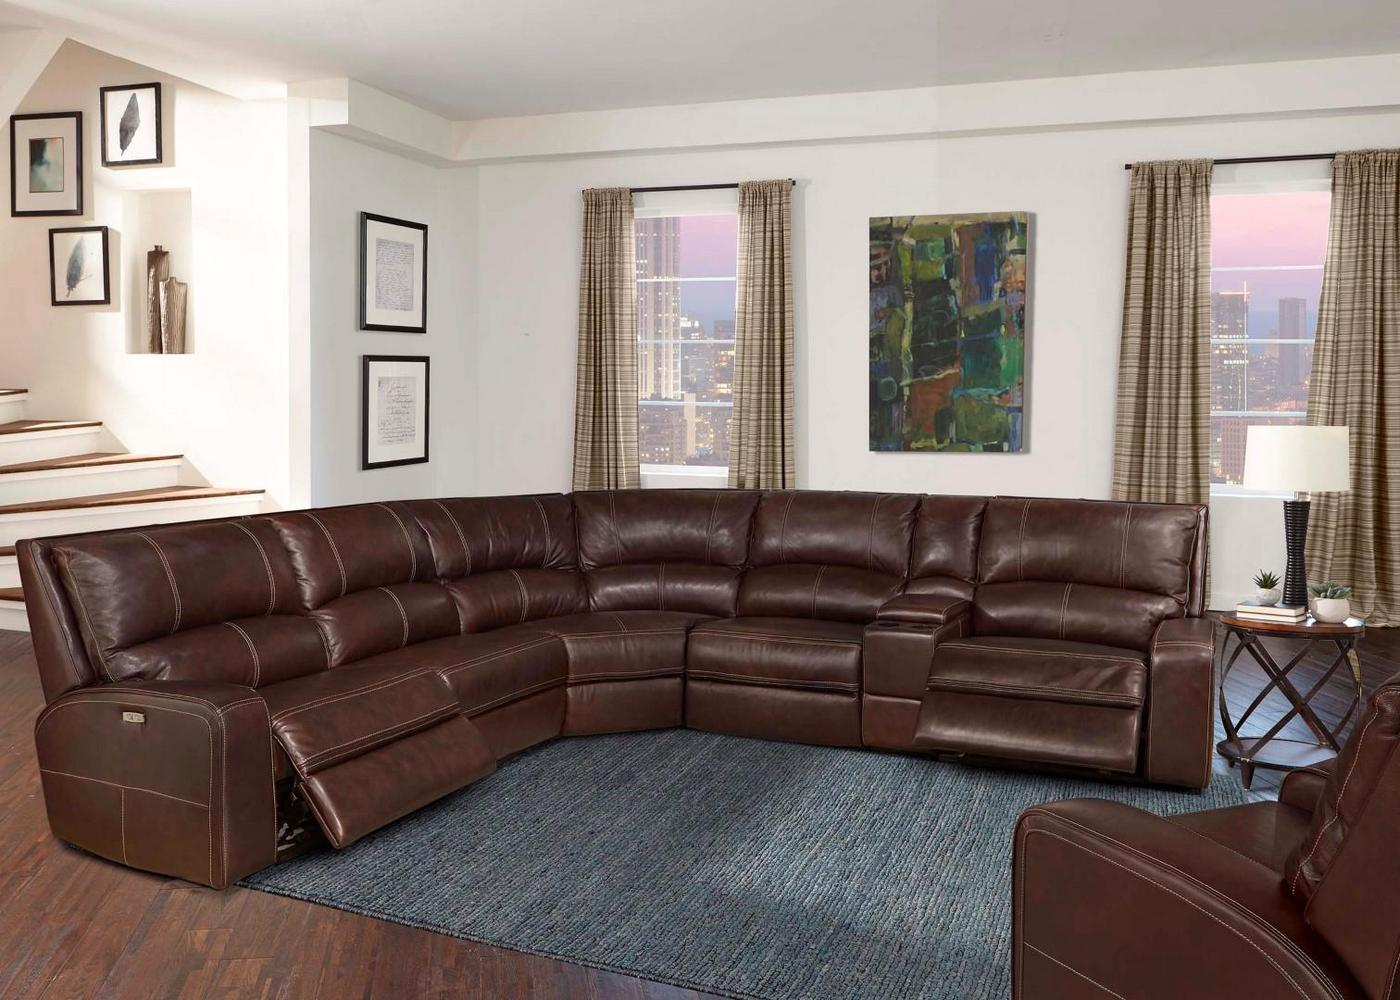 Details About Swift Clydesdale Modular Leather Sectional Sofa Power Headrest Armless Recliner